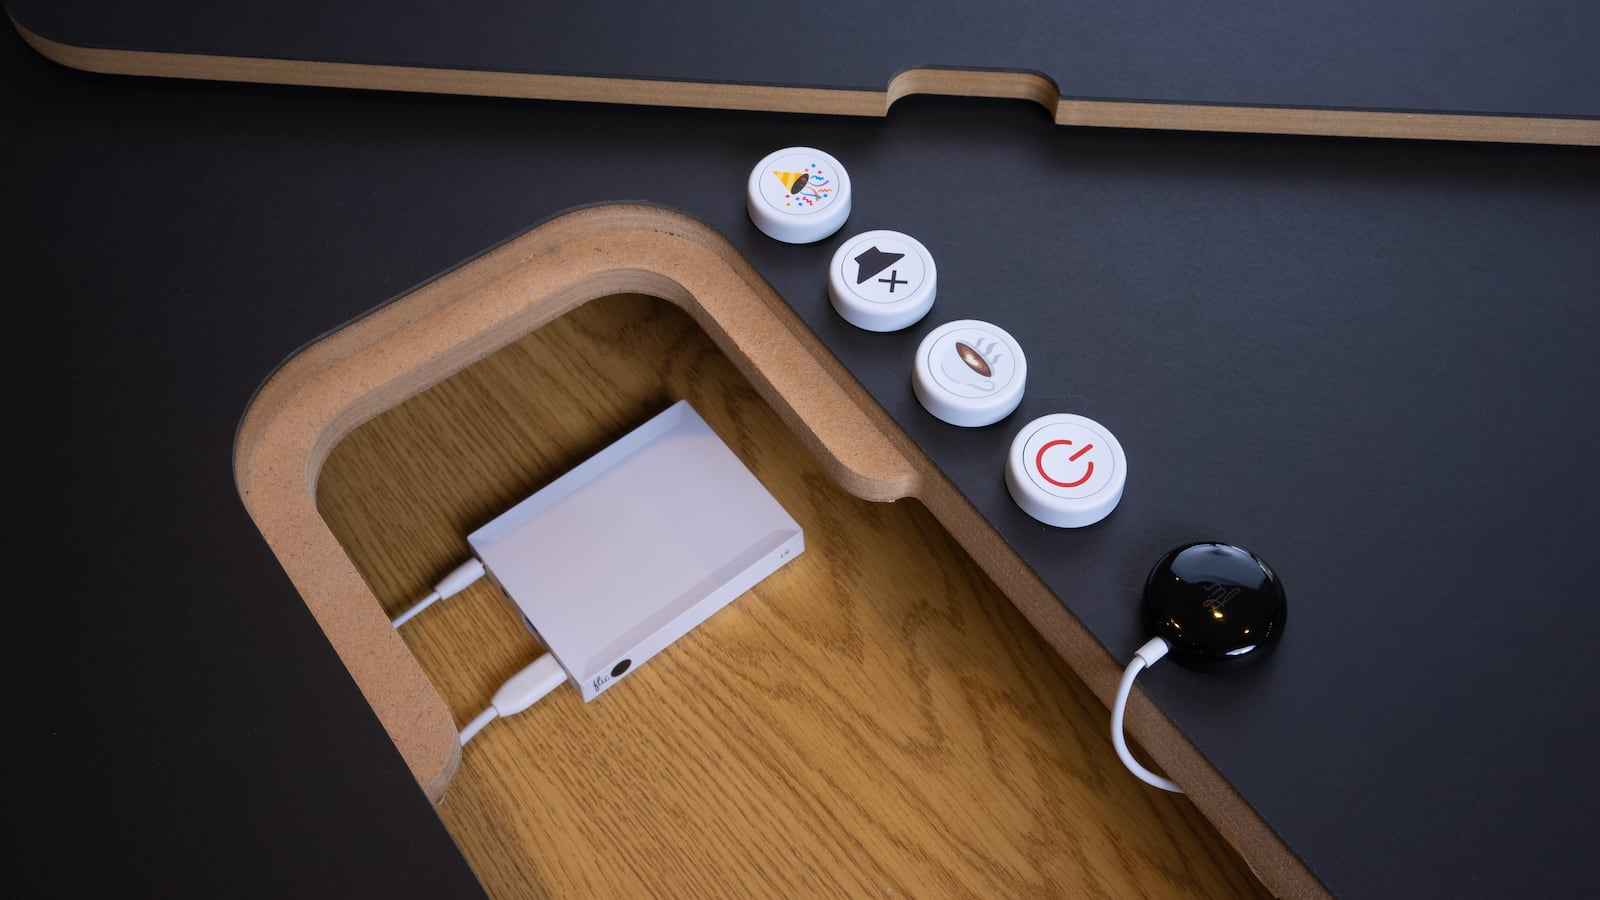 Flic 2 Smart Home Buttons Starter Kit controls your devices with the push of a button